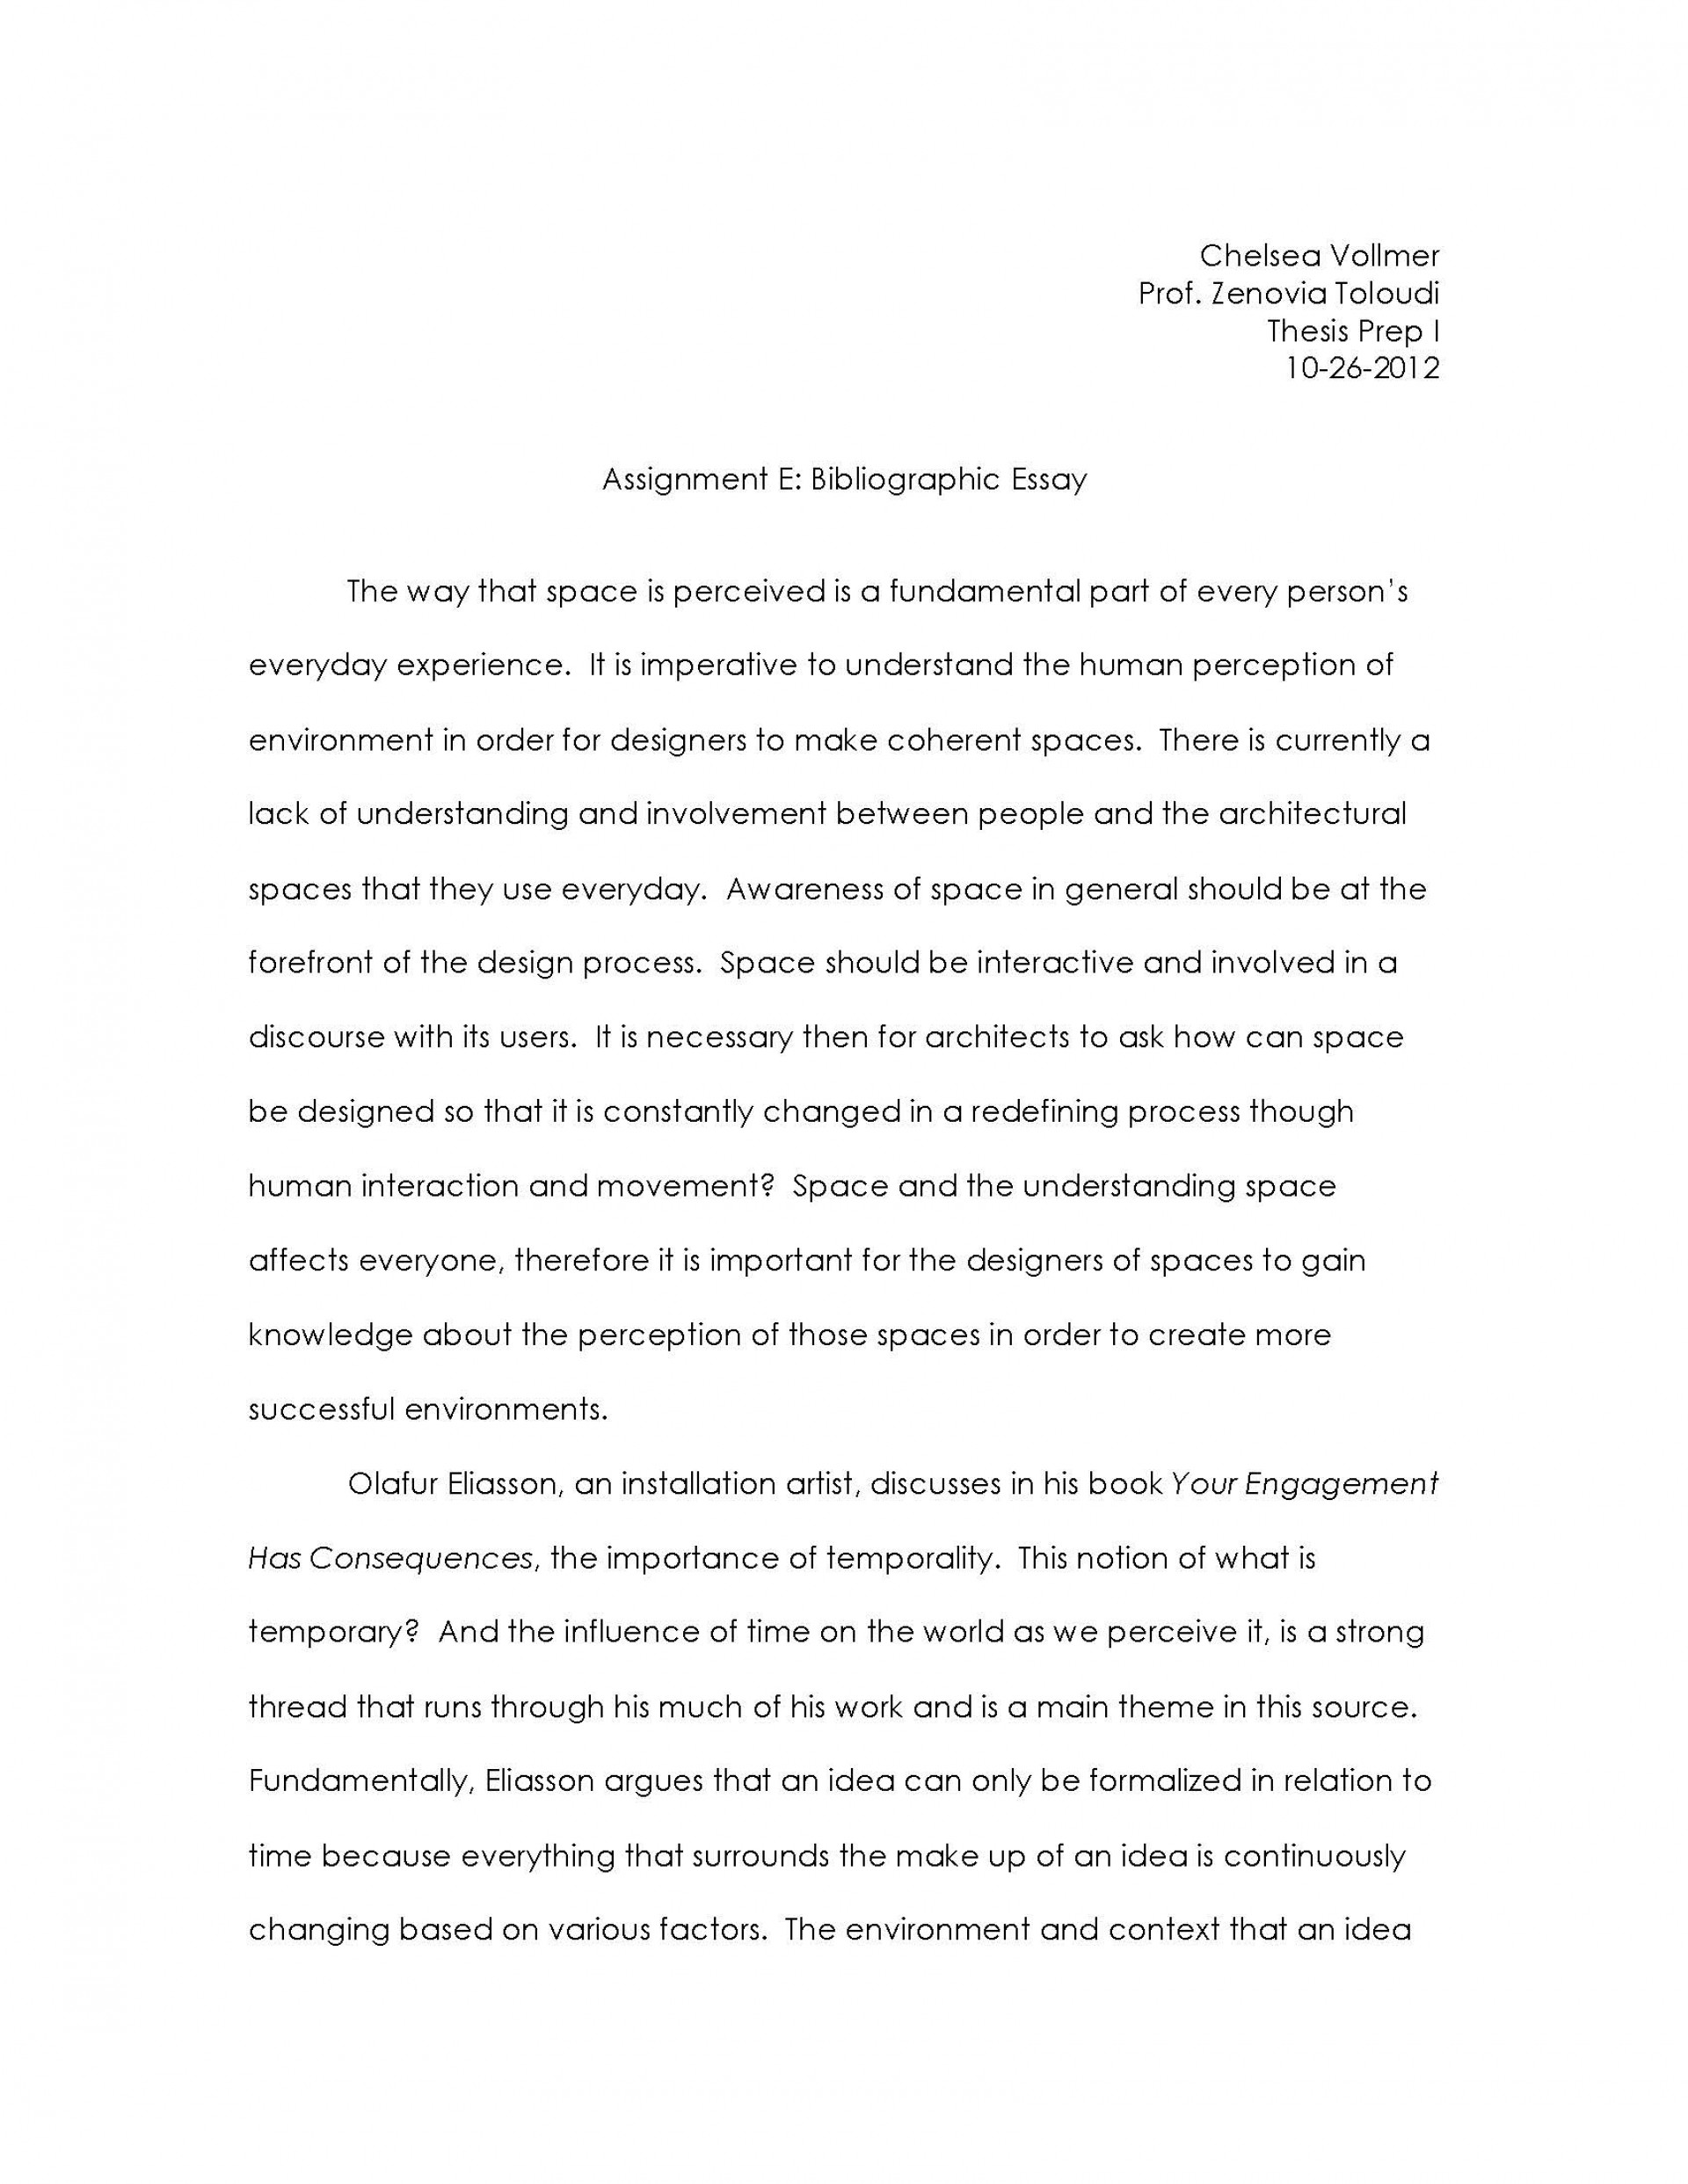 006 Essay Example Assignment E Page 12 How To Write Fascinating A Satire On Obesity Outline Essay-example 1920